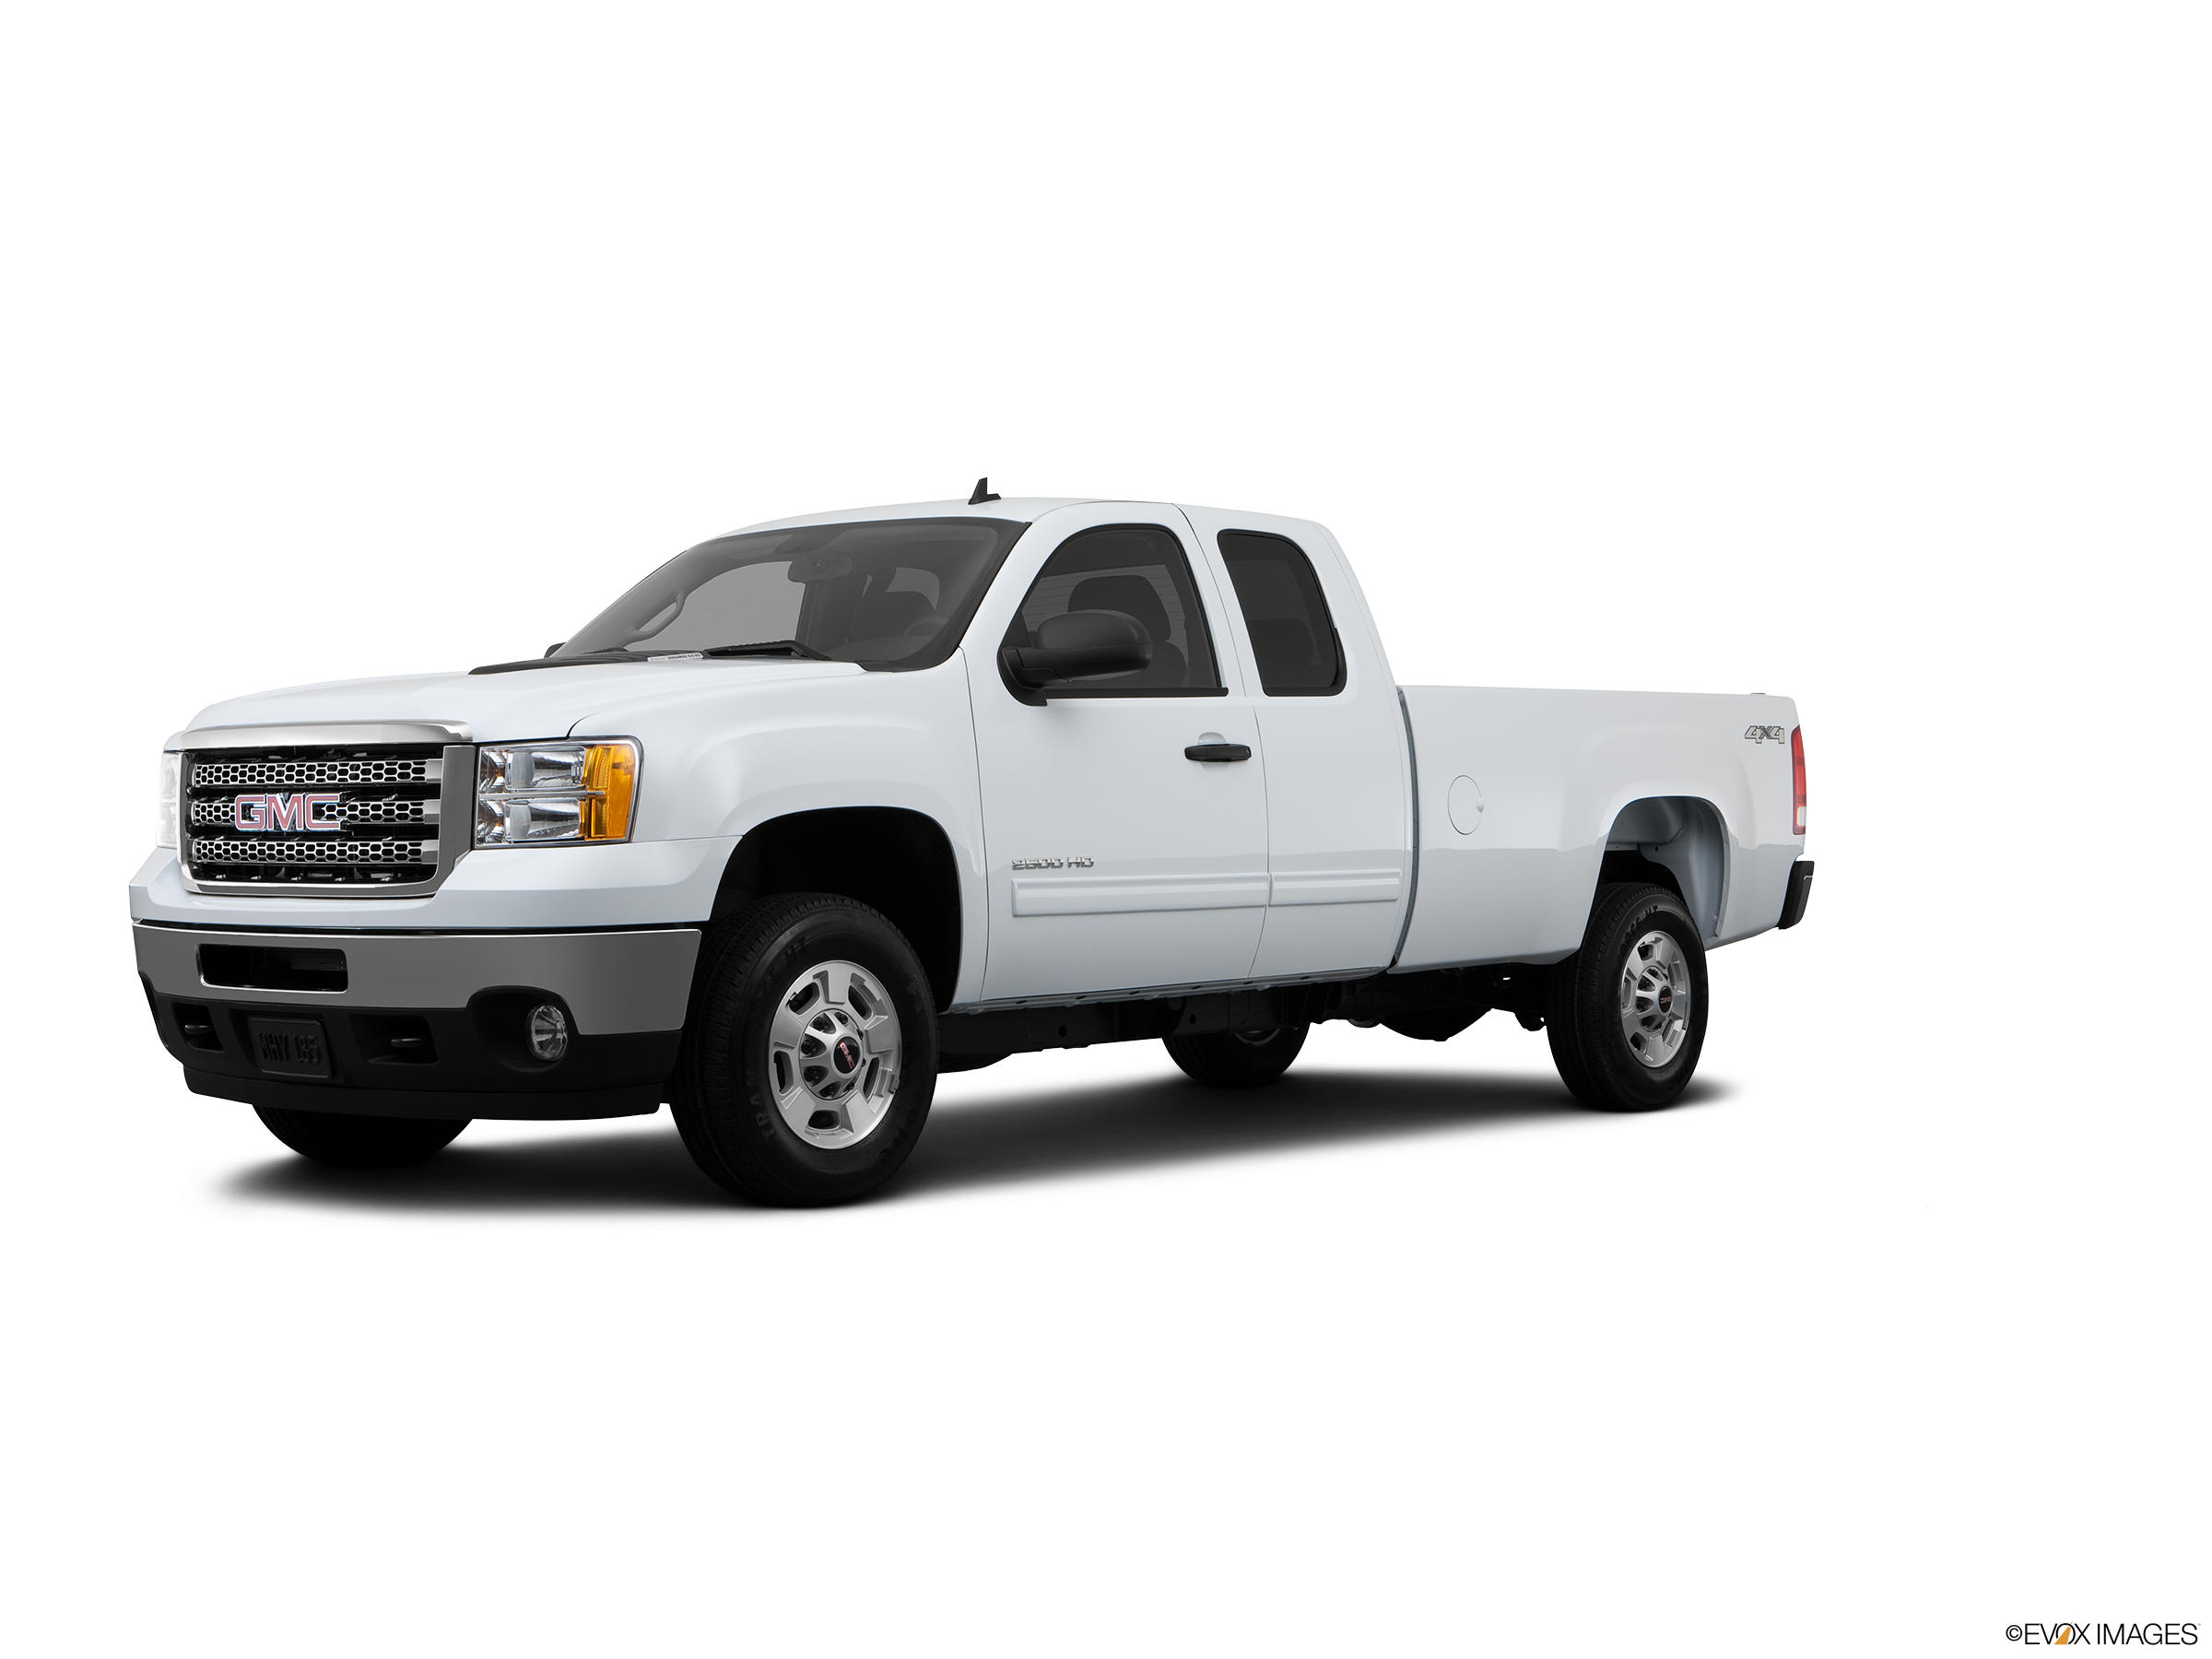 2013 Gmc Sierra 2500 Hd Extended Cab Values Cars For Sale Kelley Blue Book